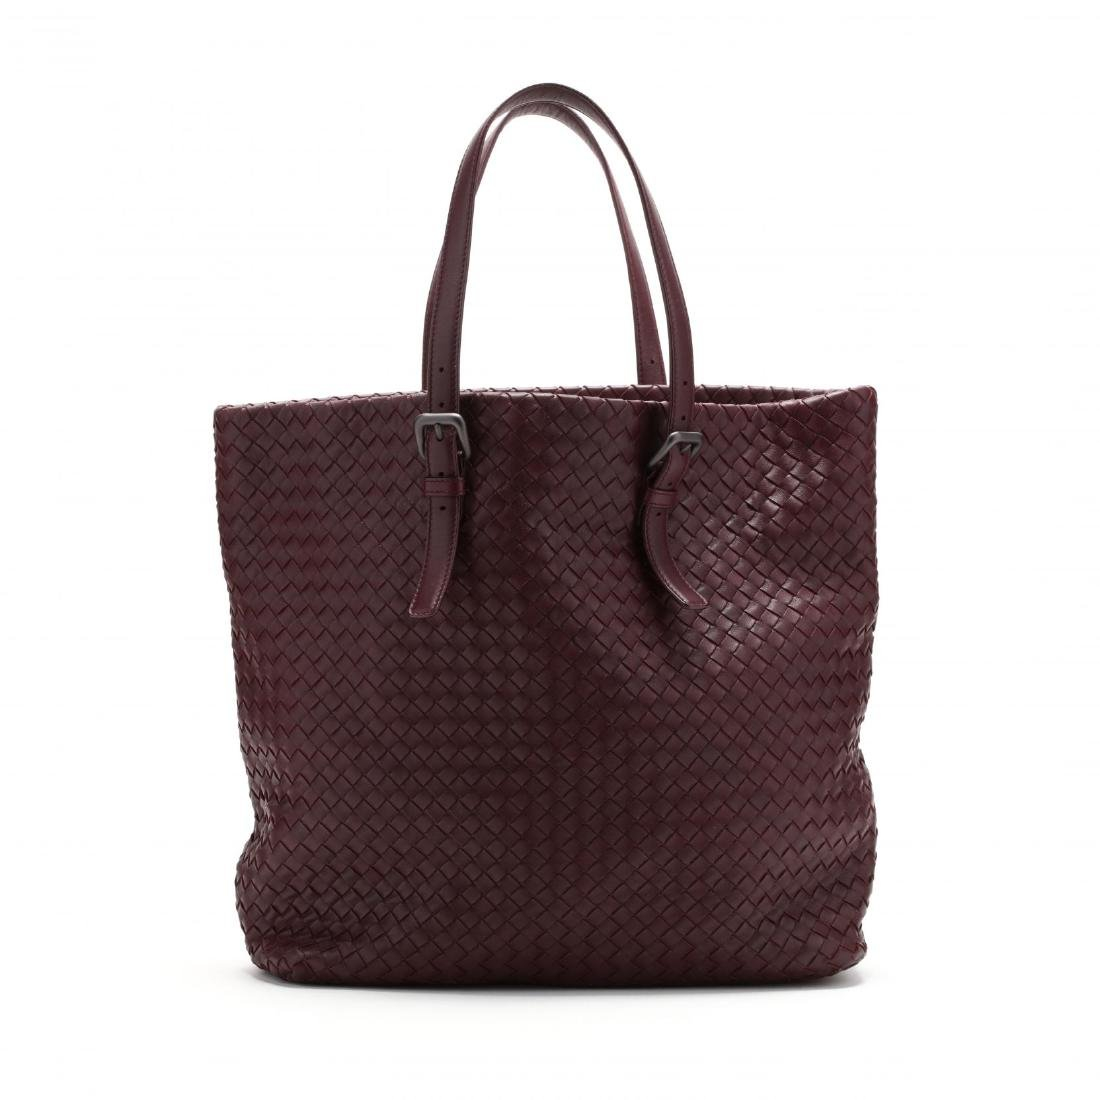 Intrecciato Woven Leather,  Rene Tote Style , Bottega